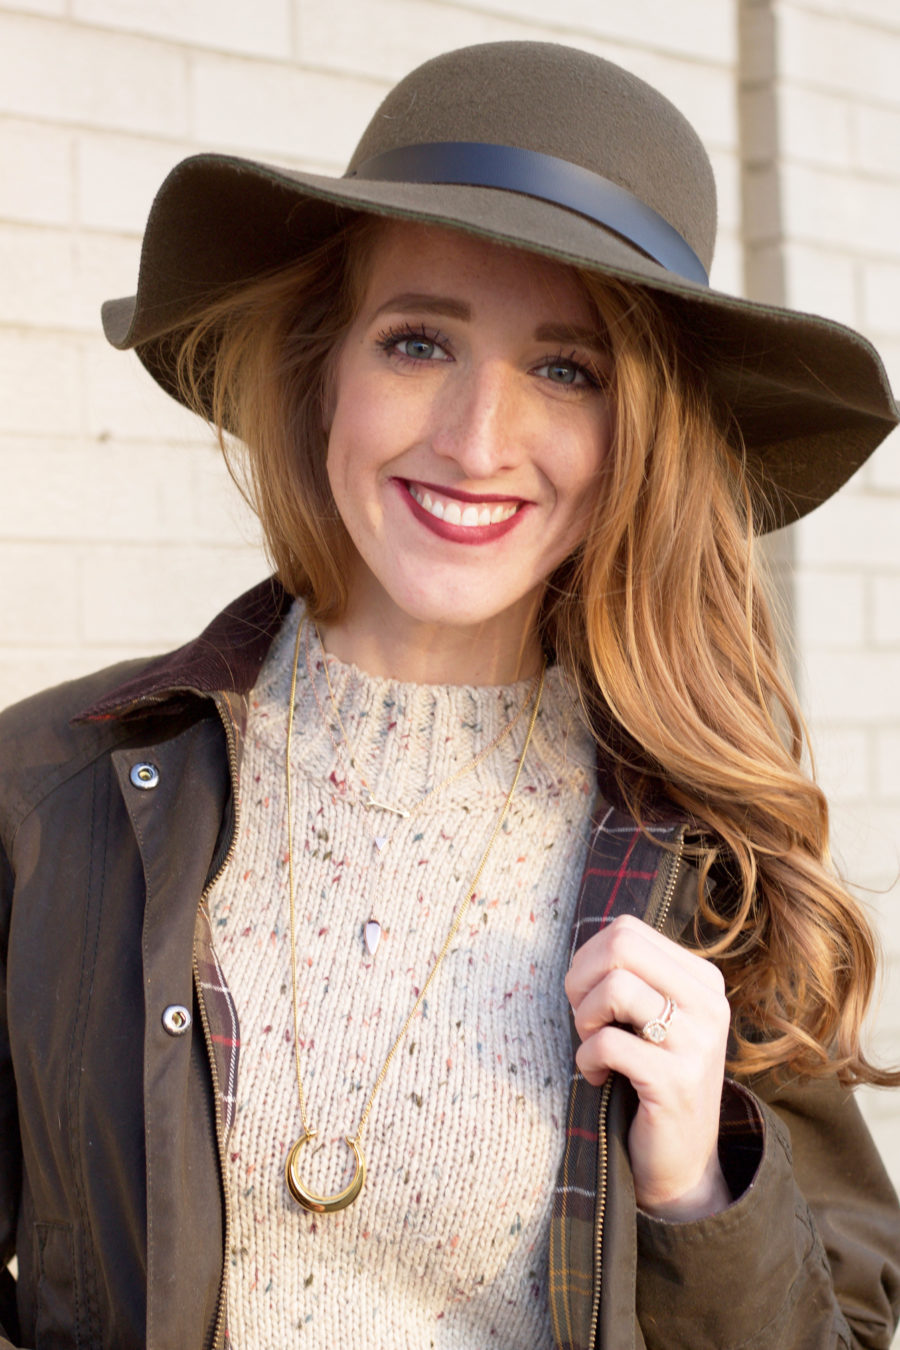 Barbour Jacket & Matching Hat 13